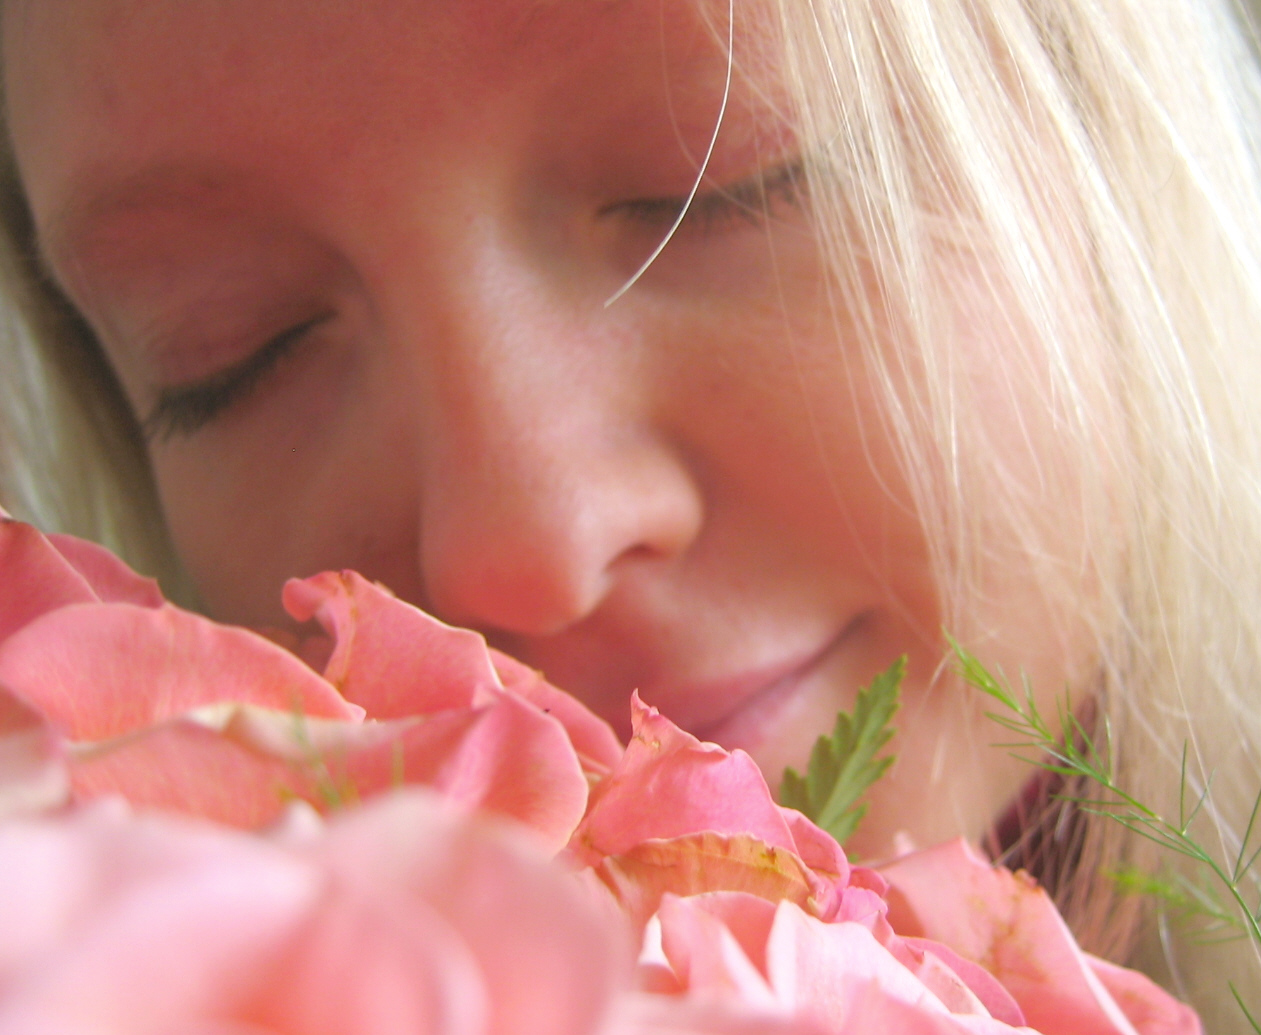 Send flowers that smell great